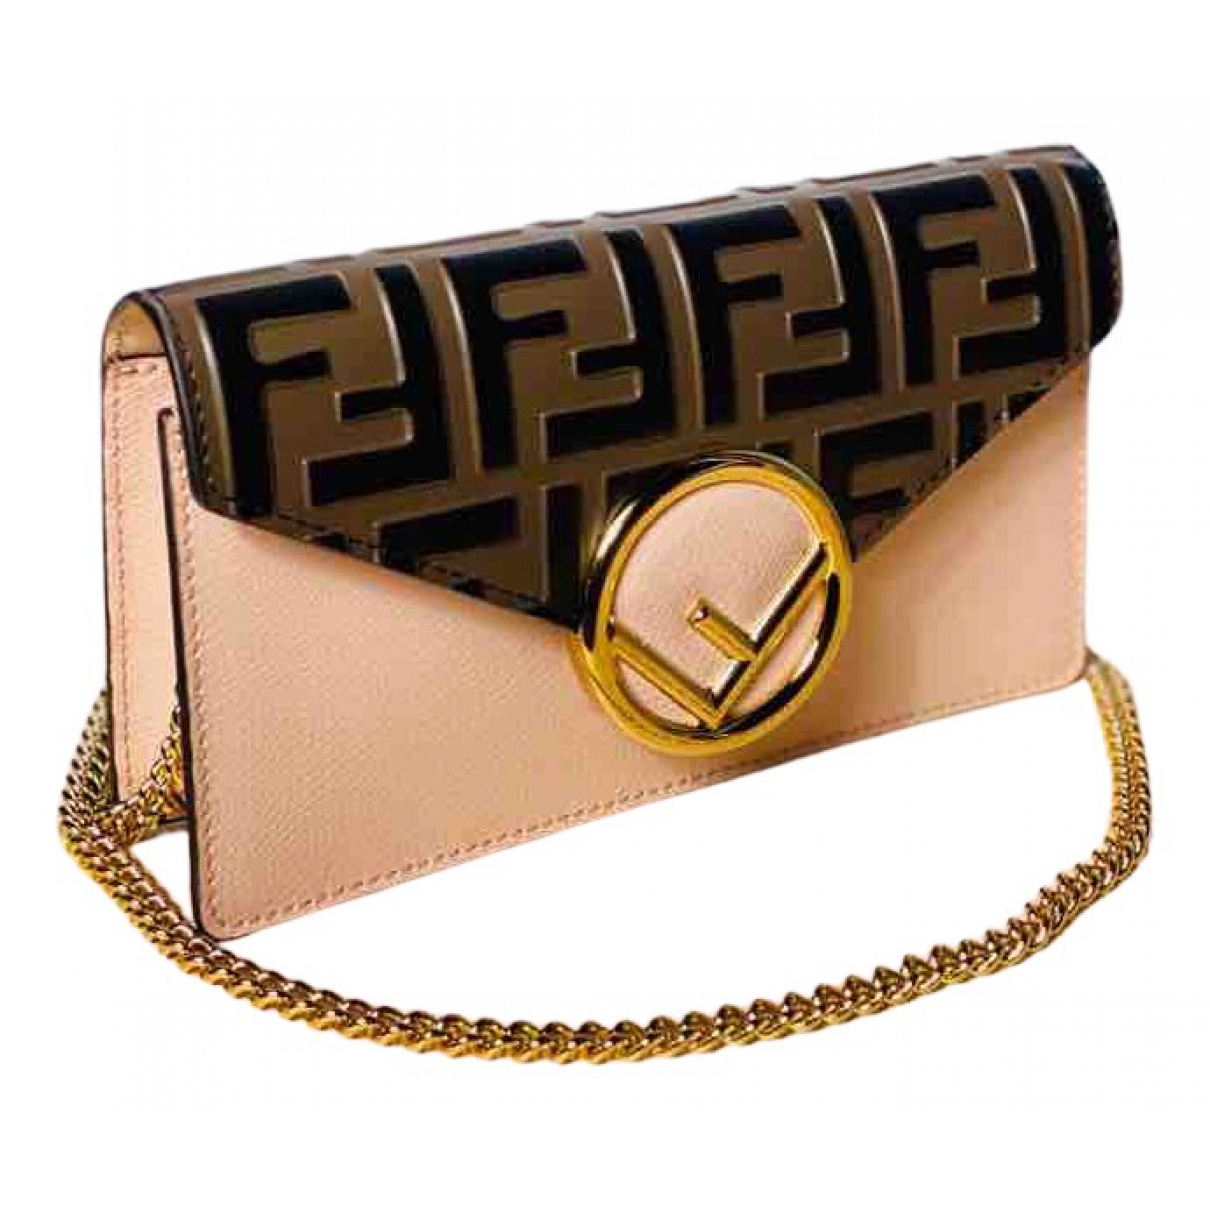 Fendi N Pink Leather handbag for Women N